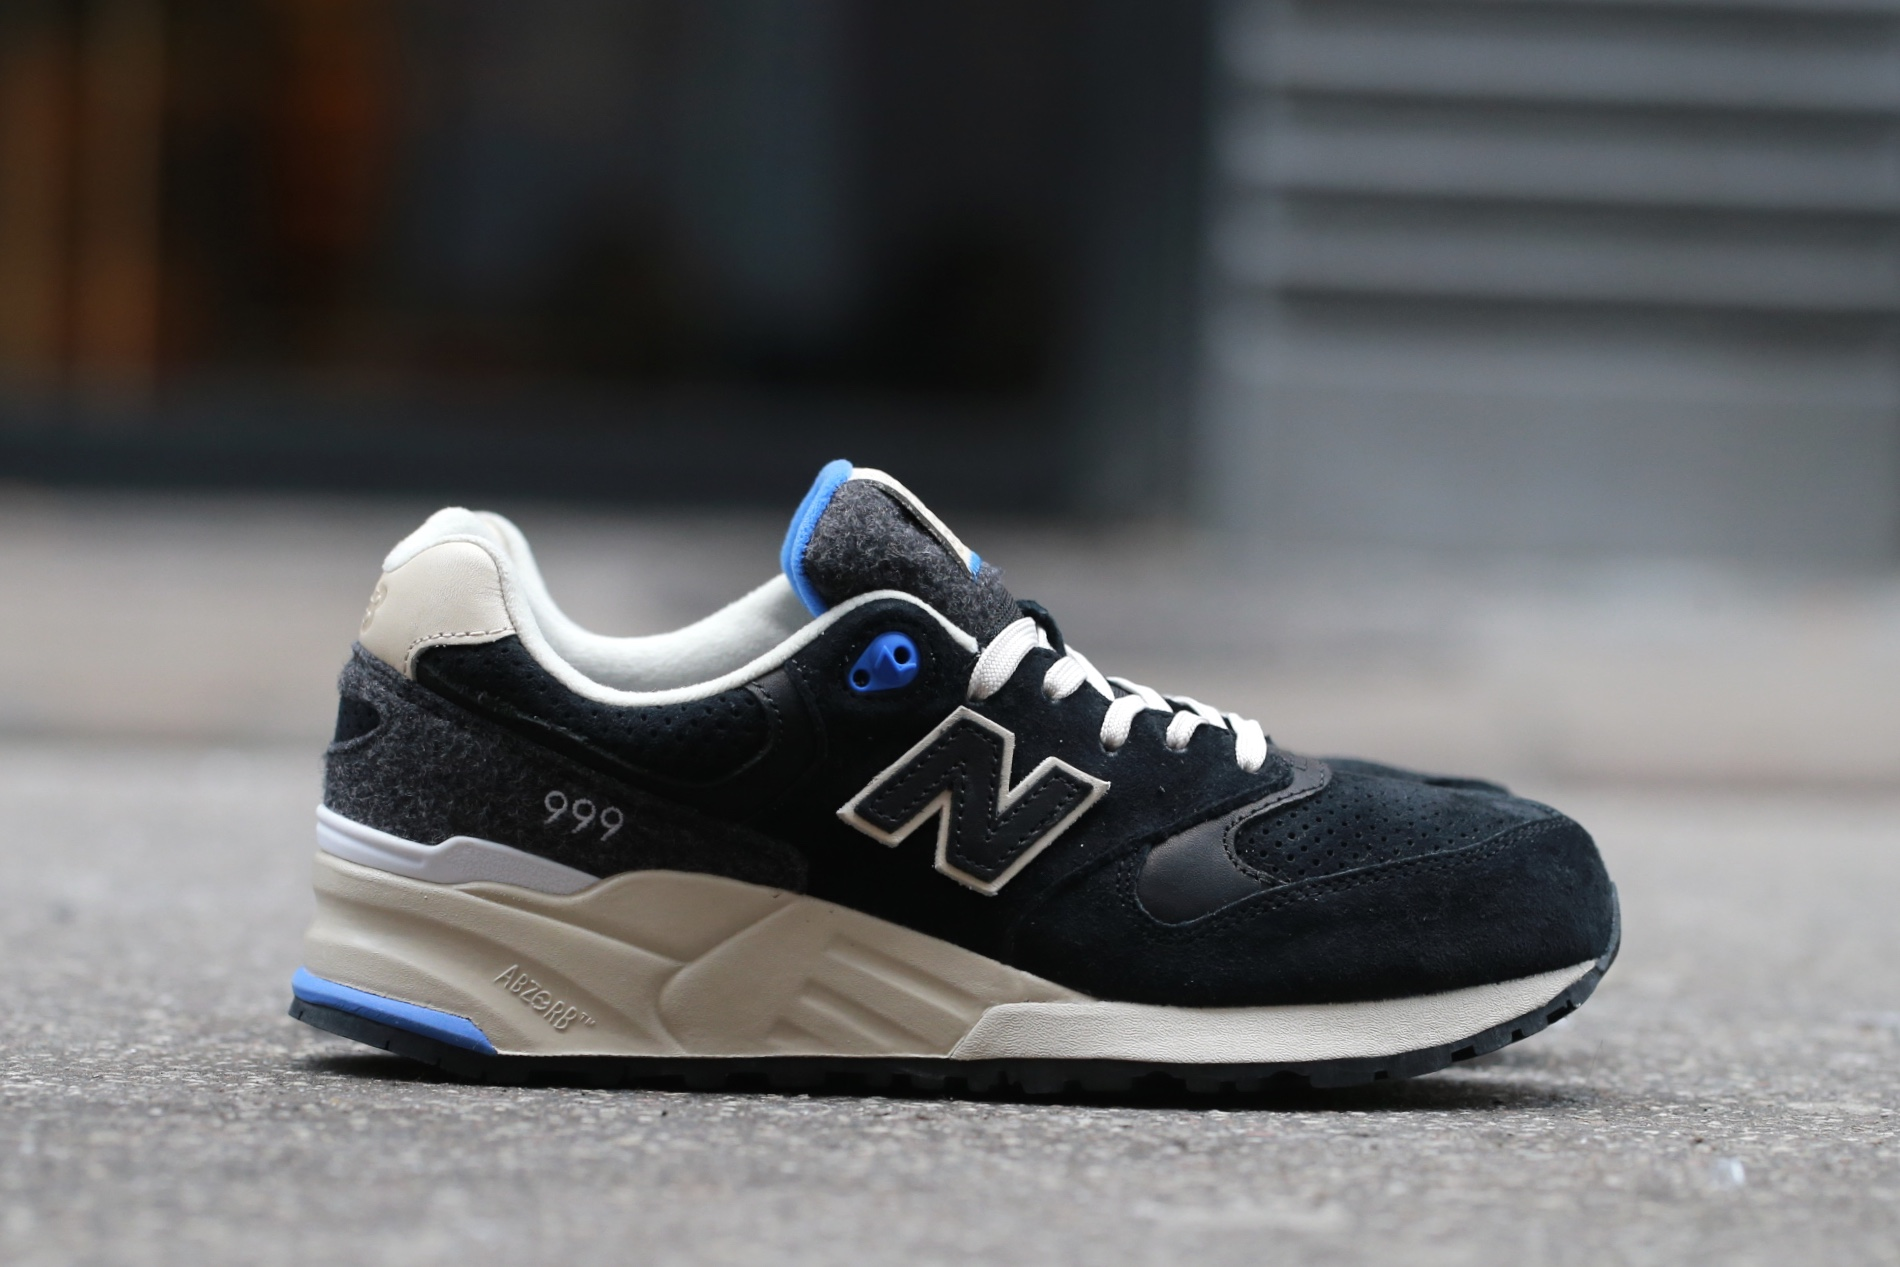 finest selection 403bd bddfc New Balance 999 Elite Edition